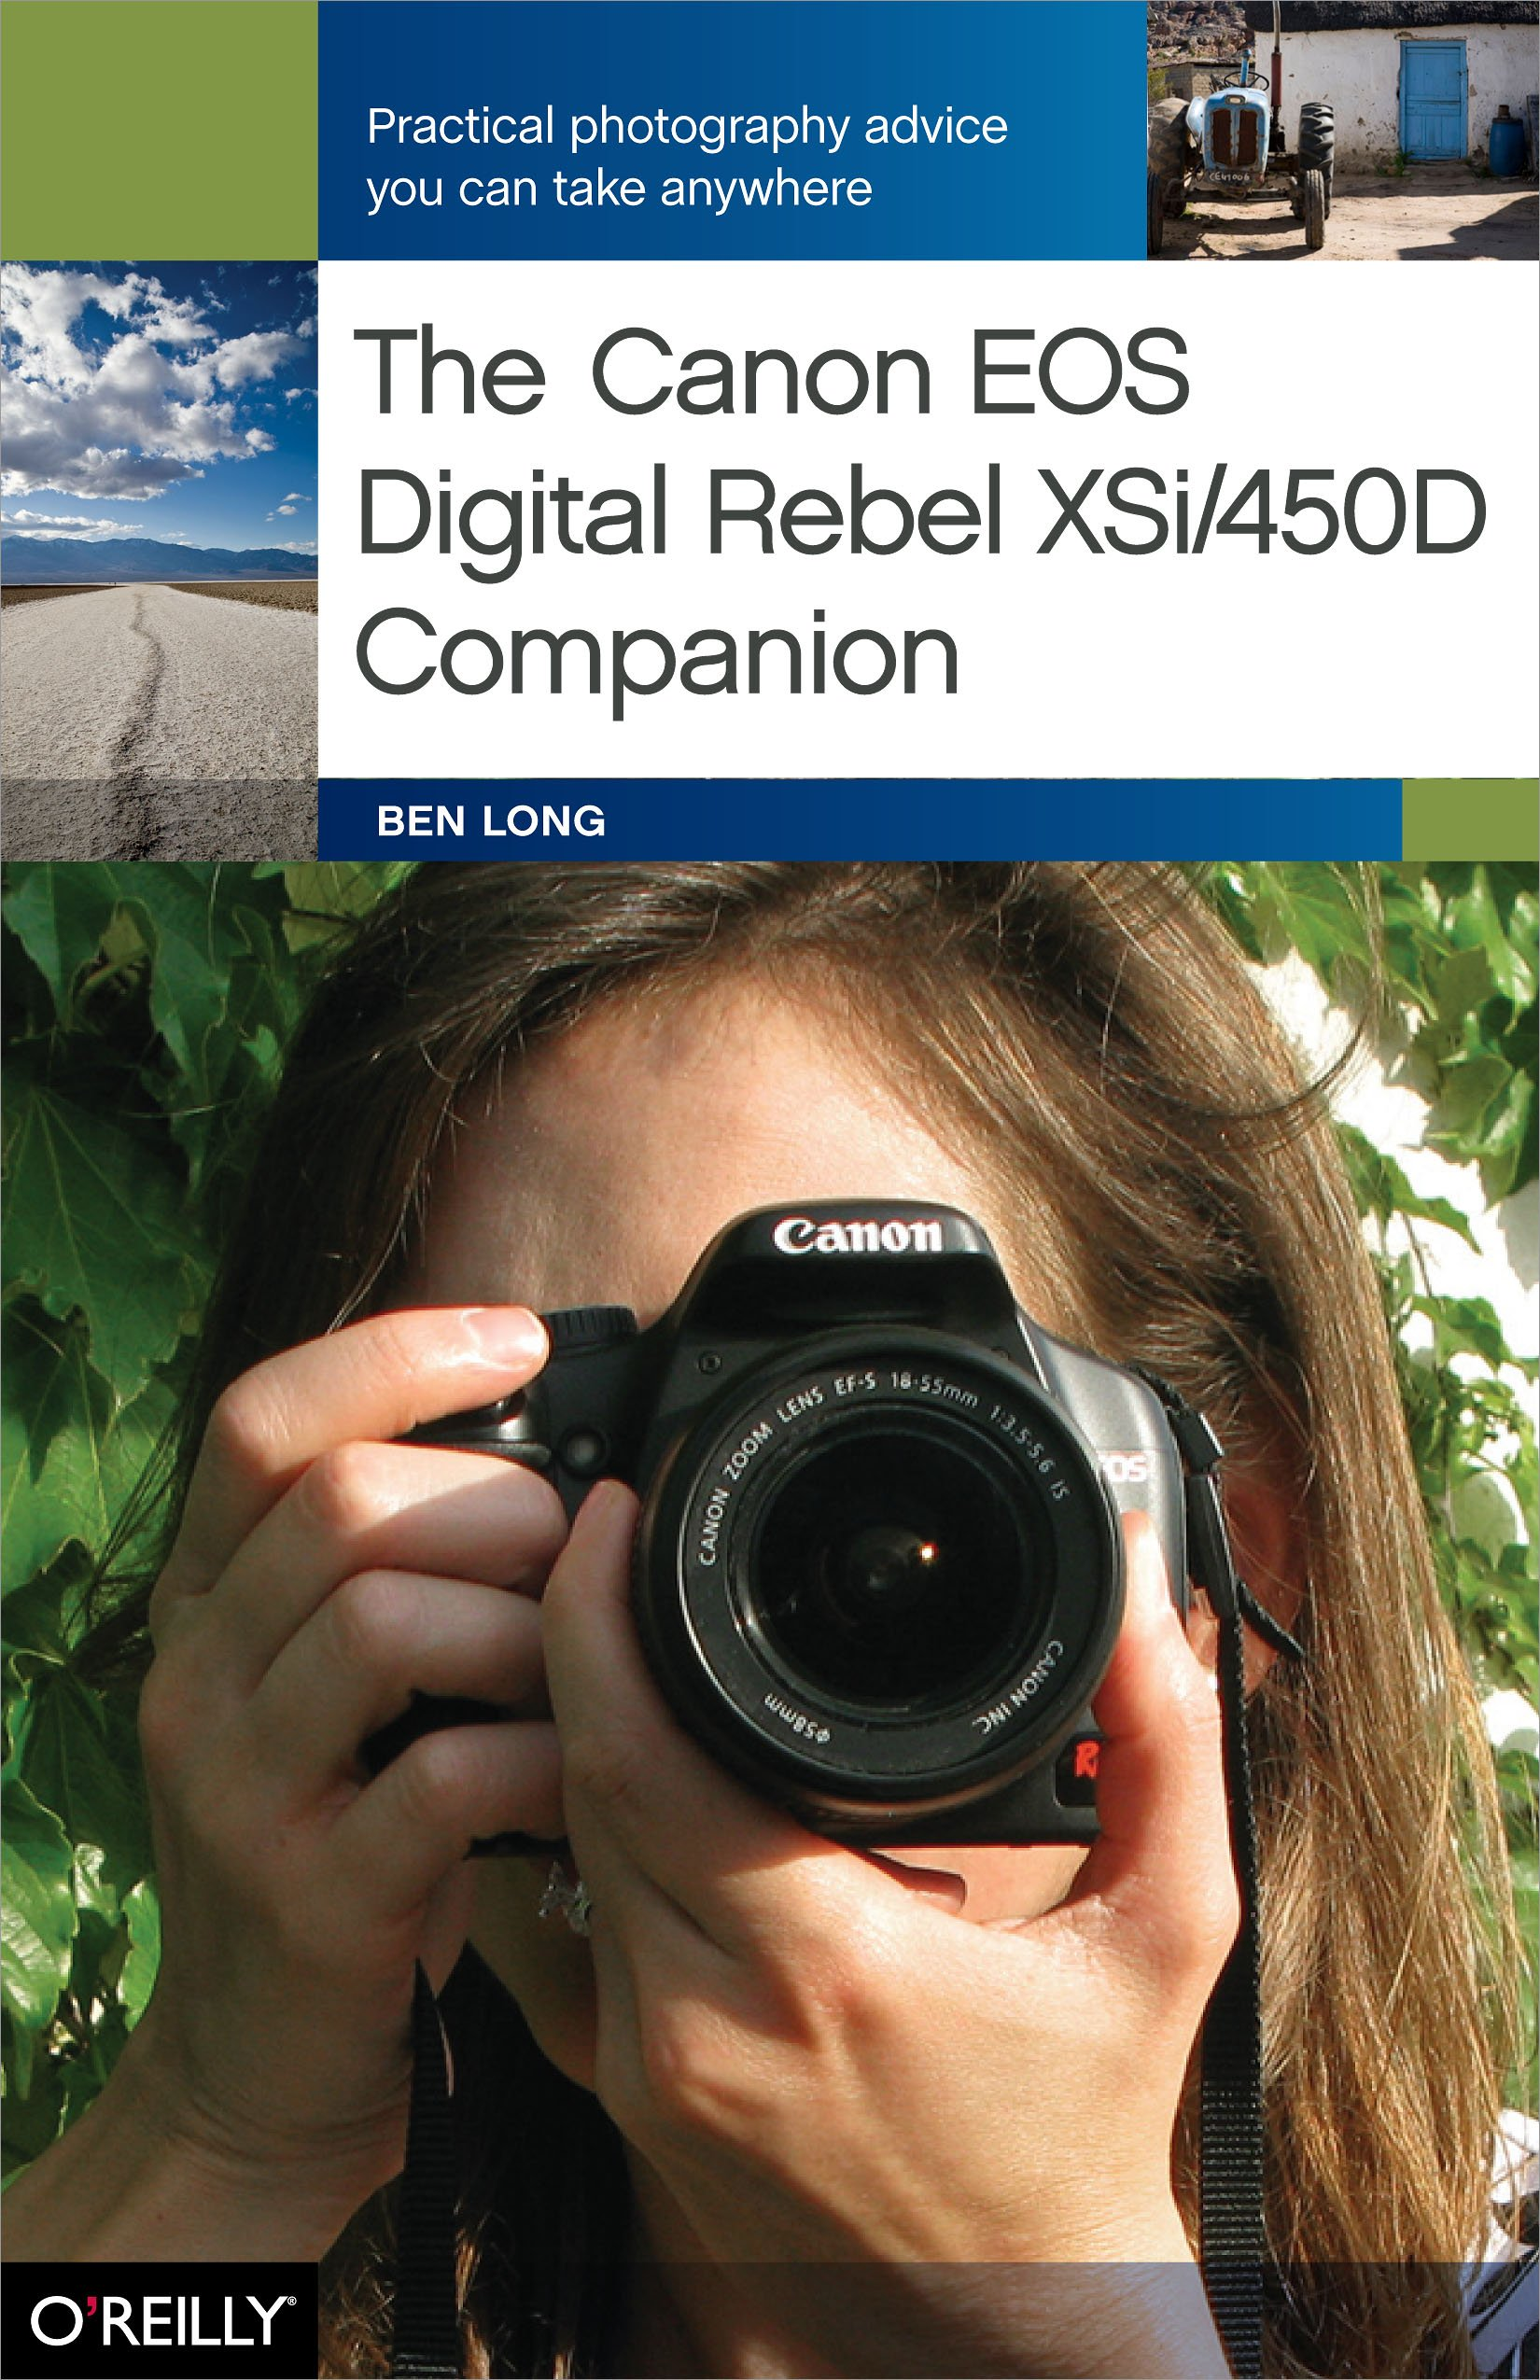 The Canon EOS Digital Rebel XSi/450D Companion: Learning How